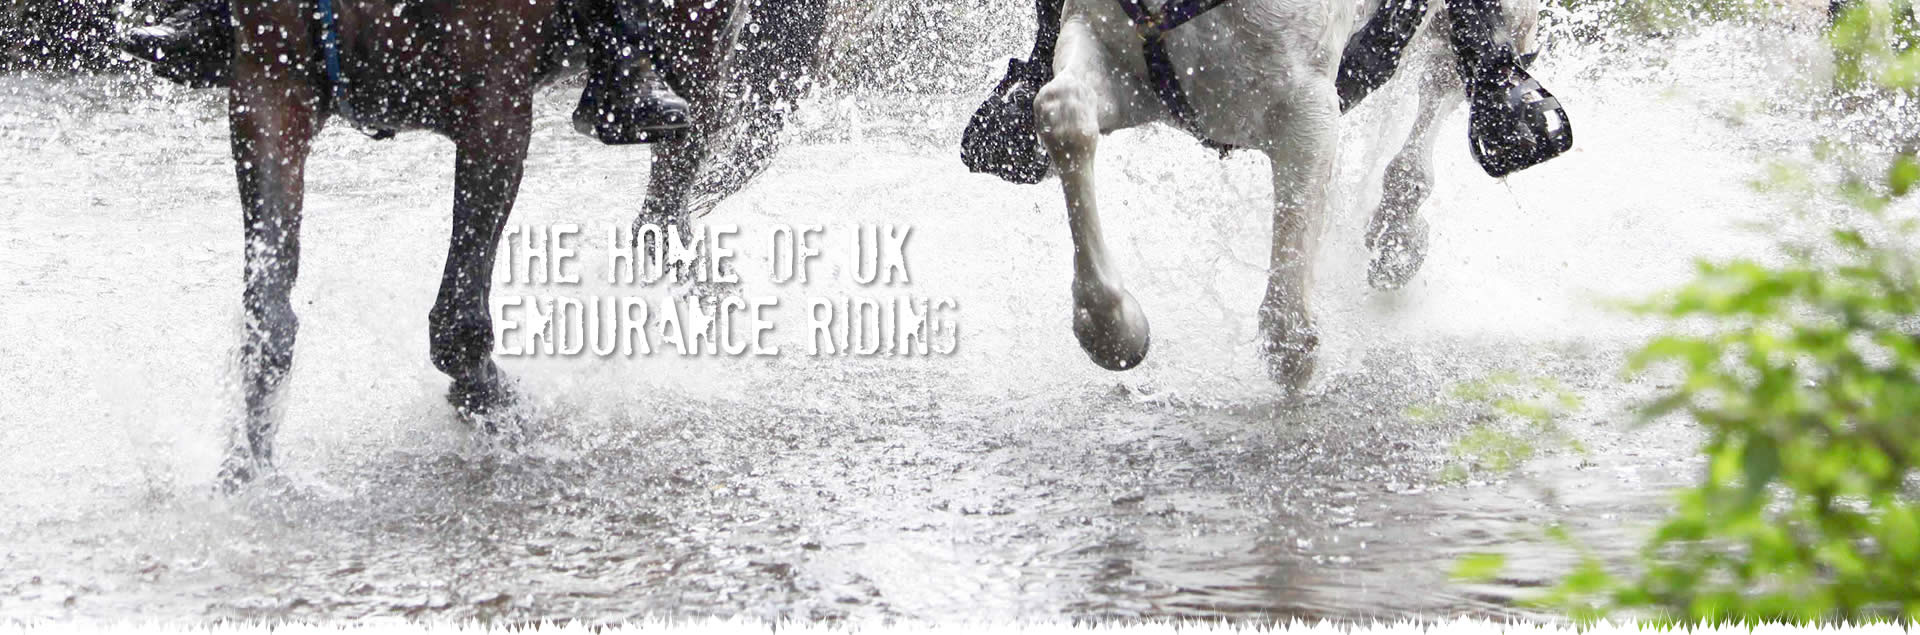 The Home of UK Endurance Riding